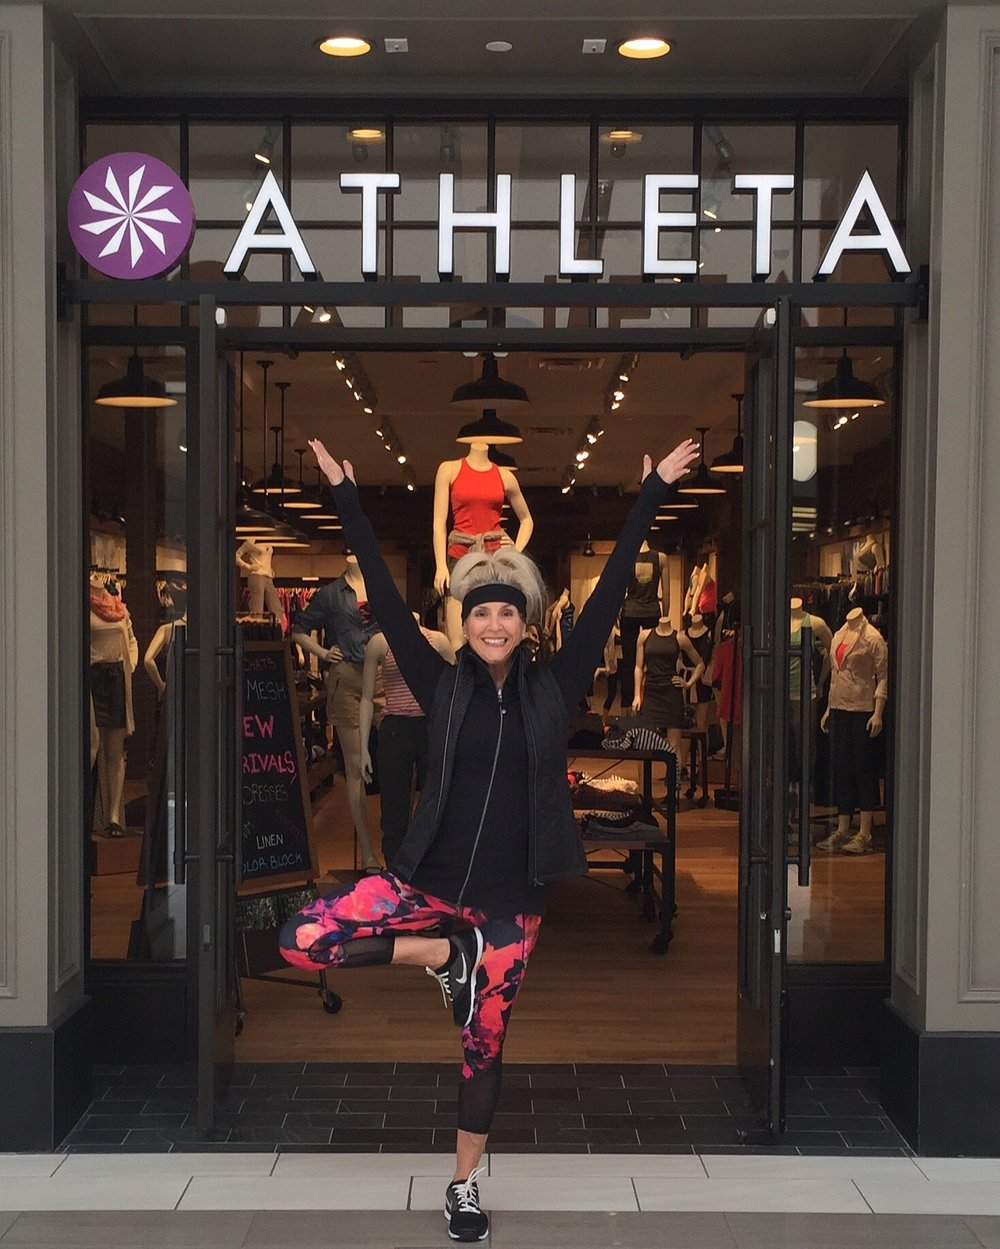 Athleta attire outside the Athleta Willowbrook store